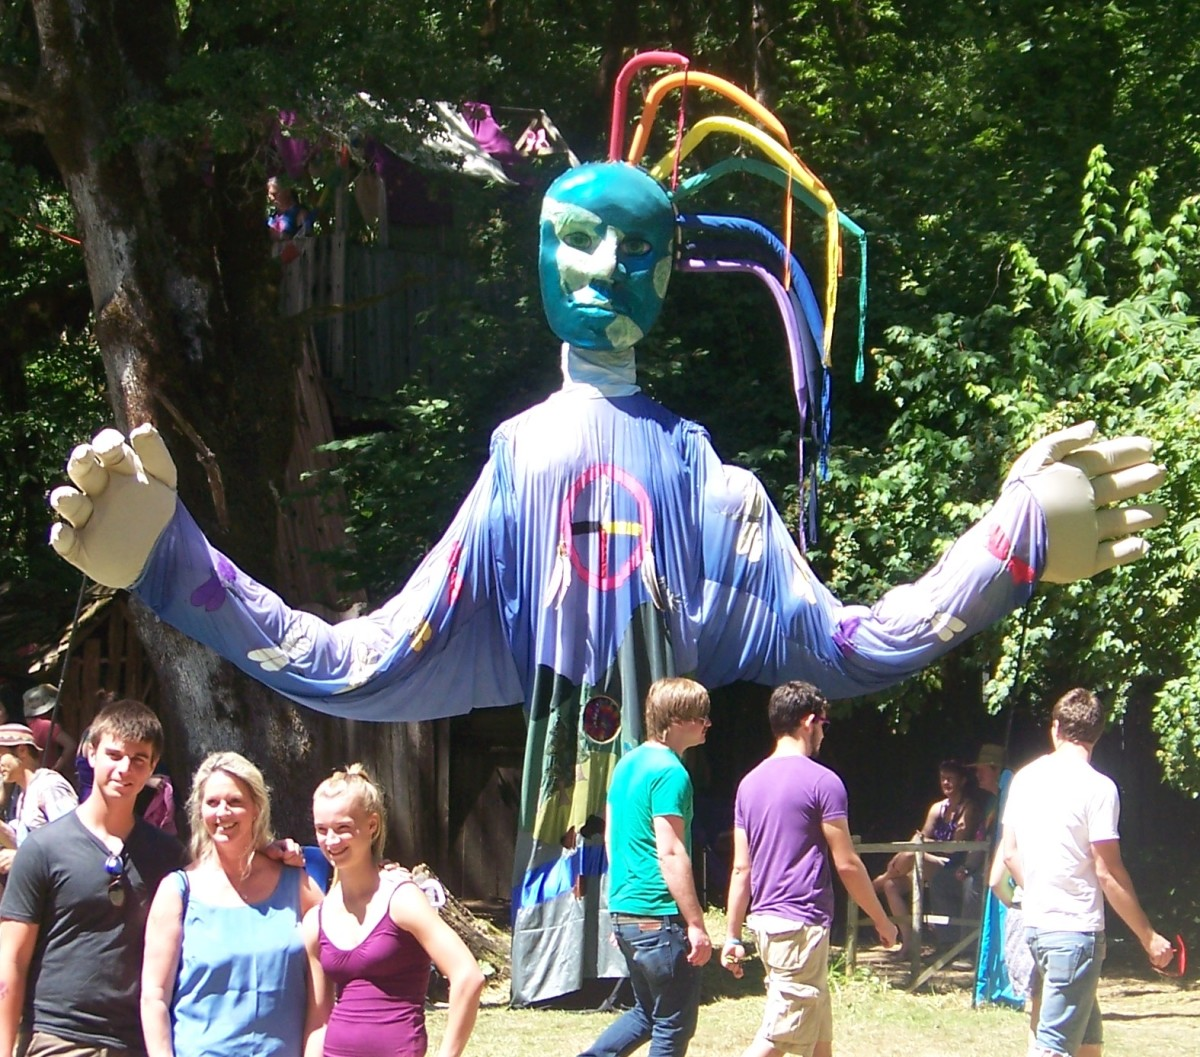 Oregon Country Fair: Photos from a Counter-Culture Festival